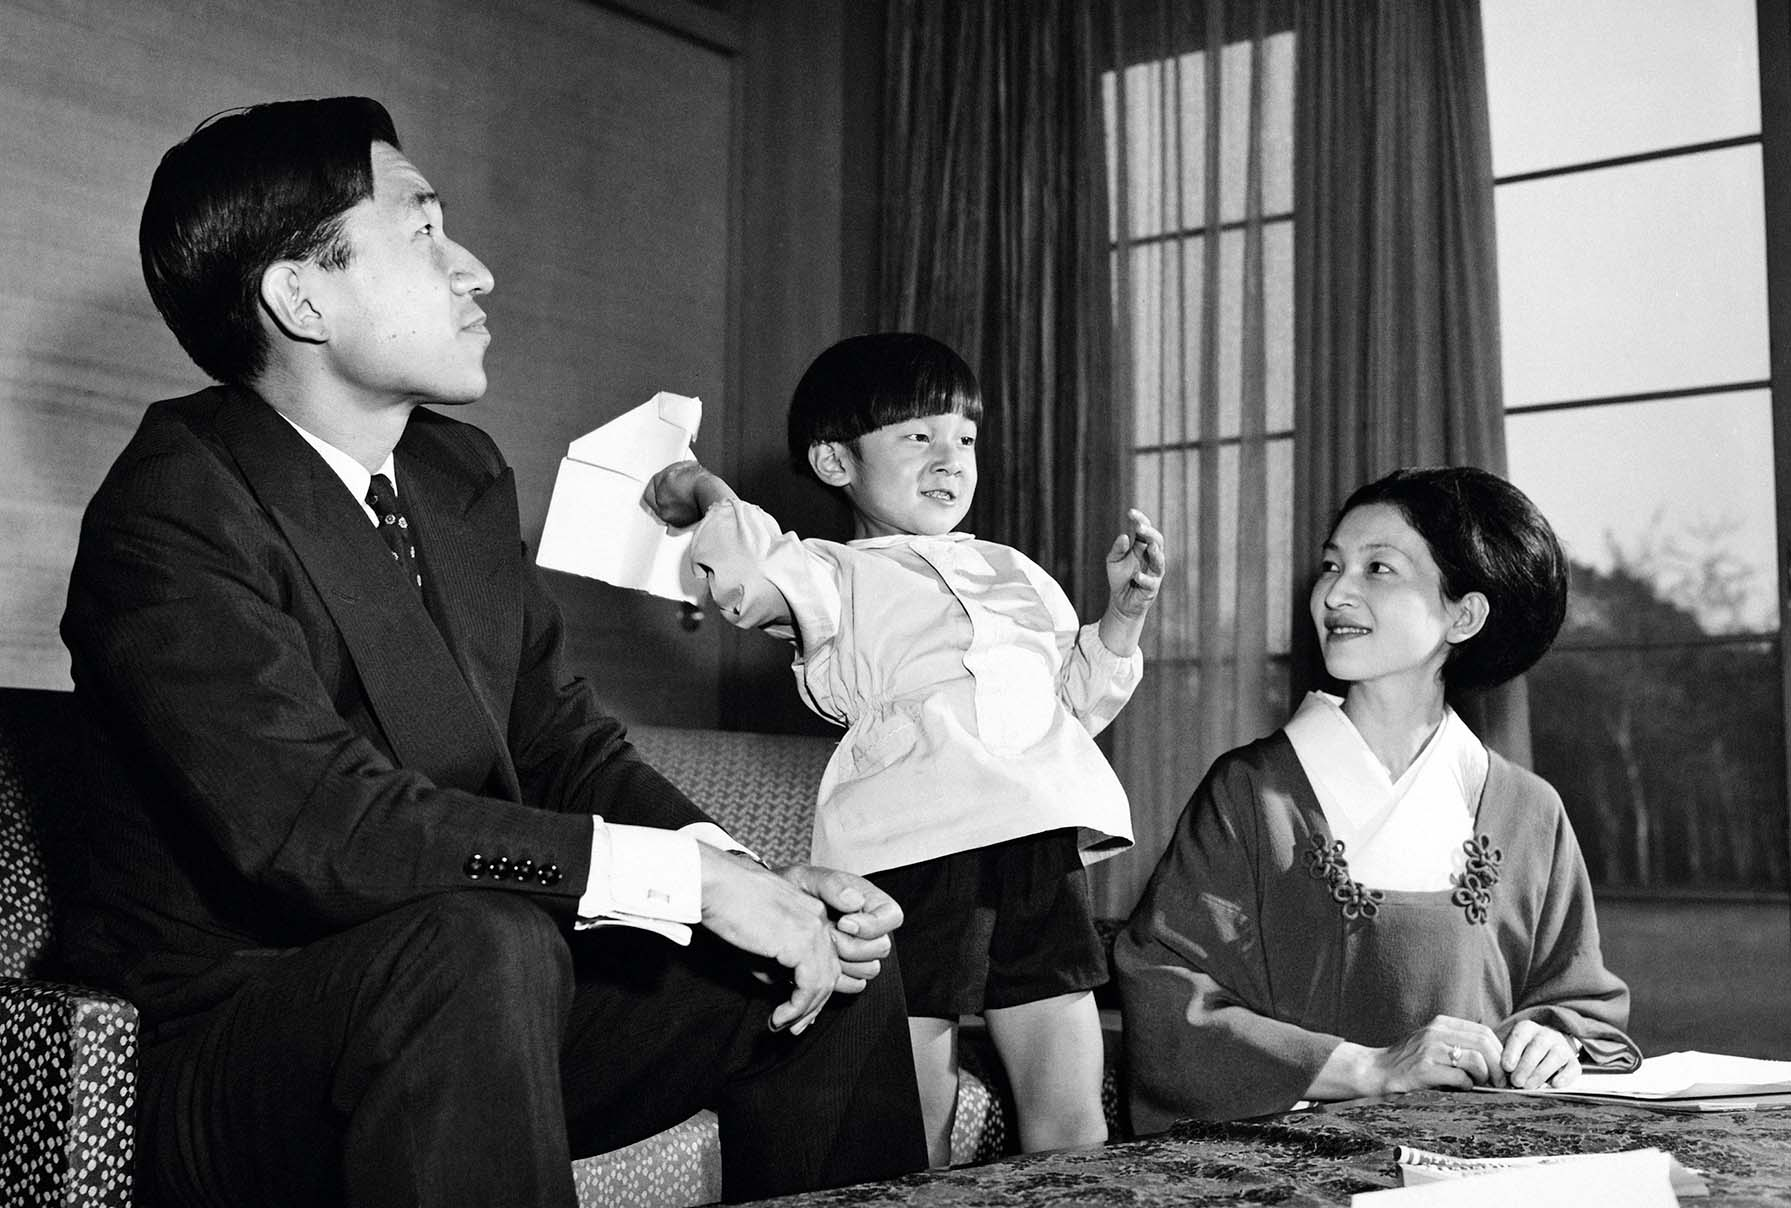 Crown Prince Akihito of Japan and Crown Princess Michiko with their son Prince Hiro, aka Crown Prince Naruhito of Japan, making paper aeroplanes on the occasion of Princess Michiko's 31st birthday, Togu Palace, Tokyo, 23rd October 1965. (Photo by Keystone/Hulton Archive/Getty Images)